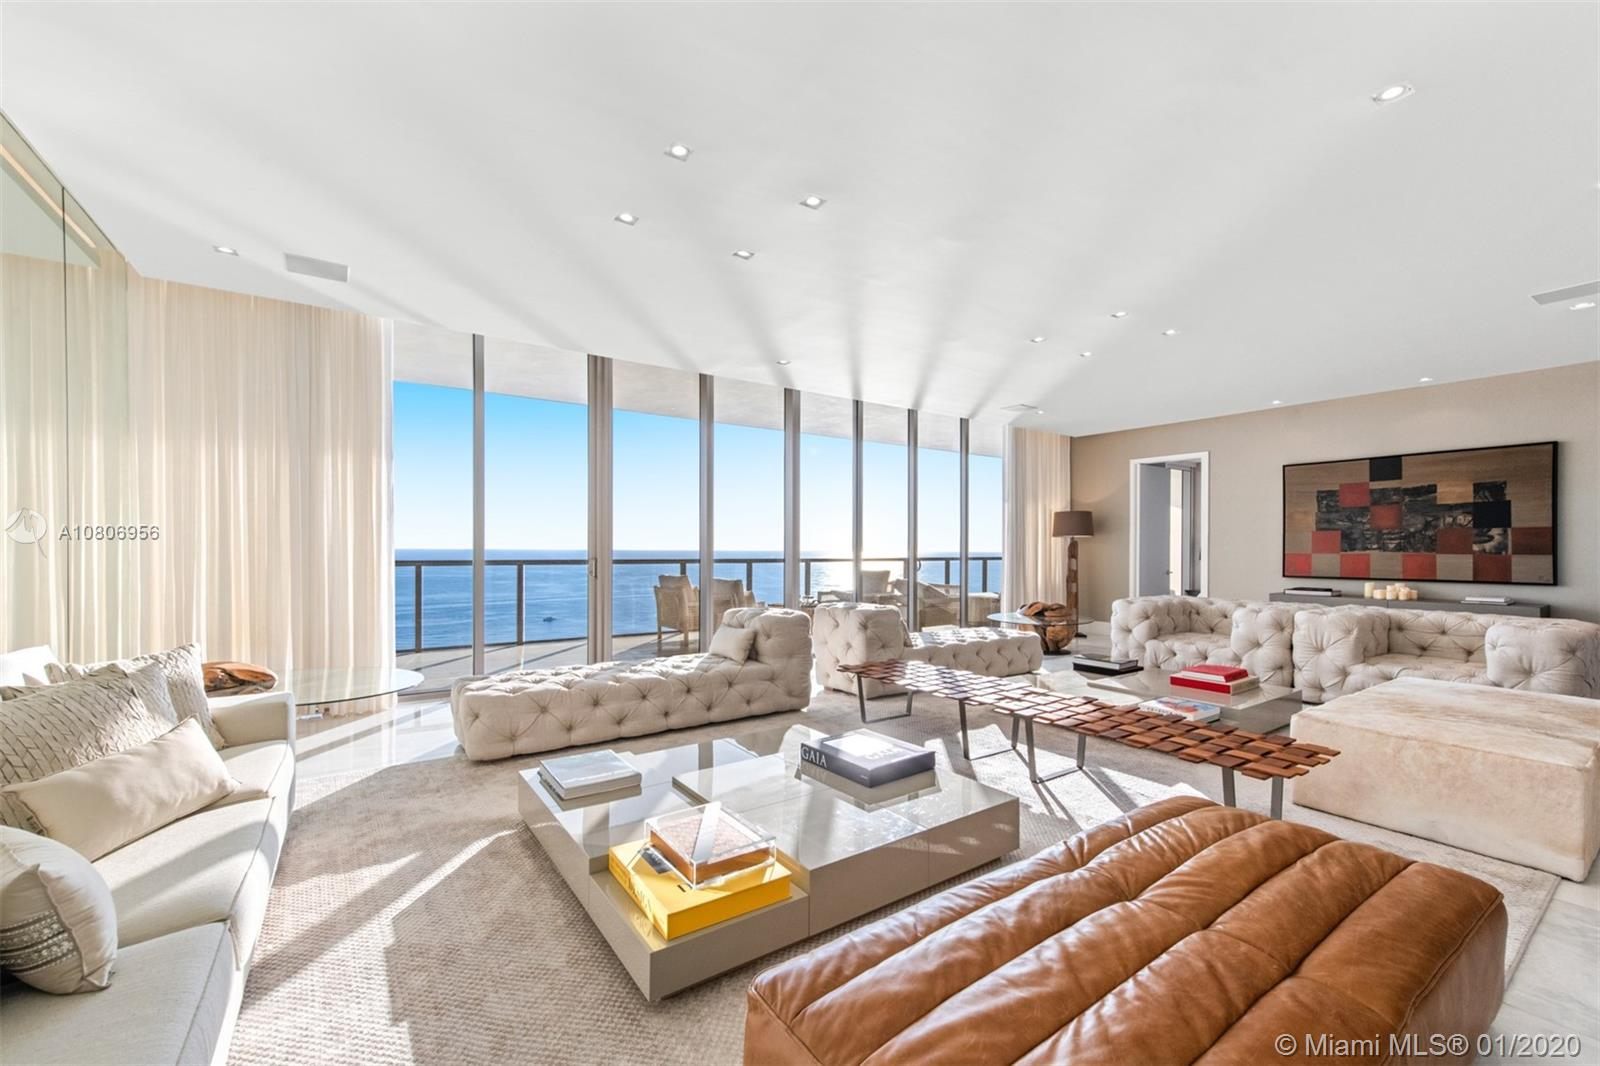 9701 Collins Ave, PH-02/03S - Bal Harbour, Florida